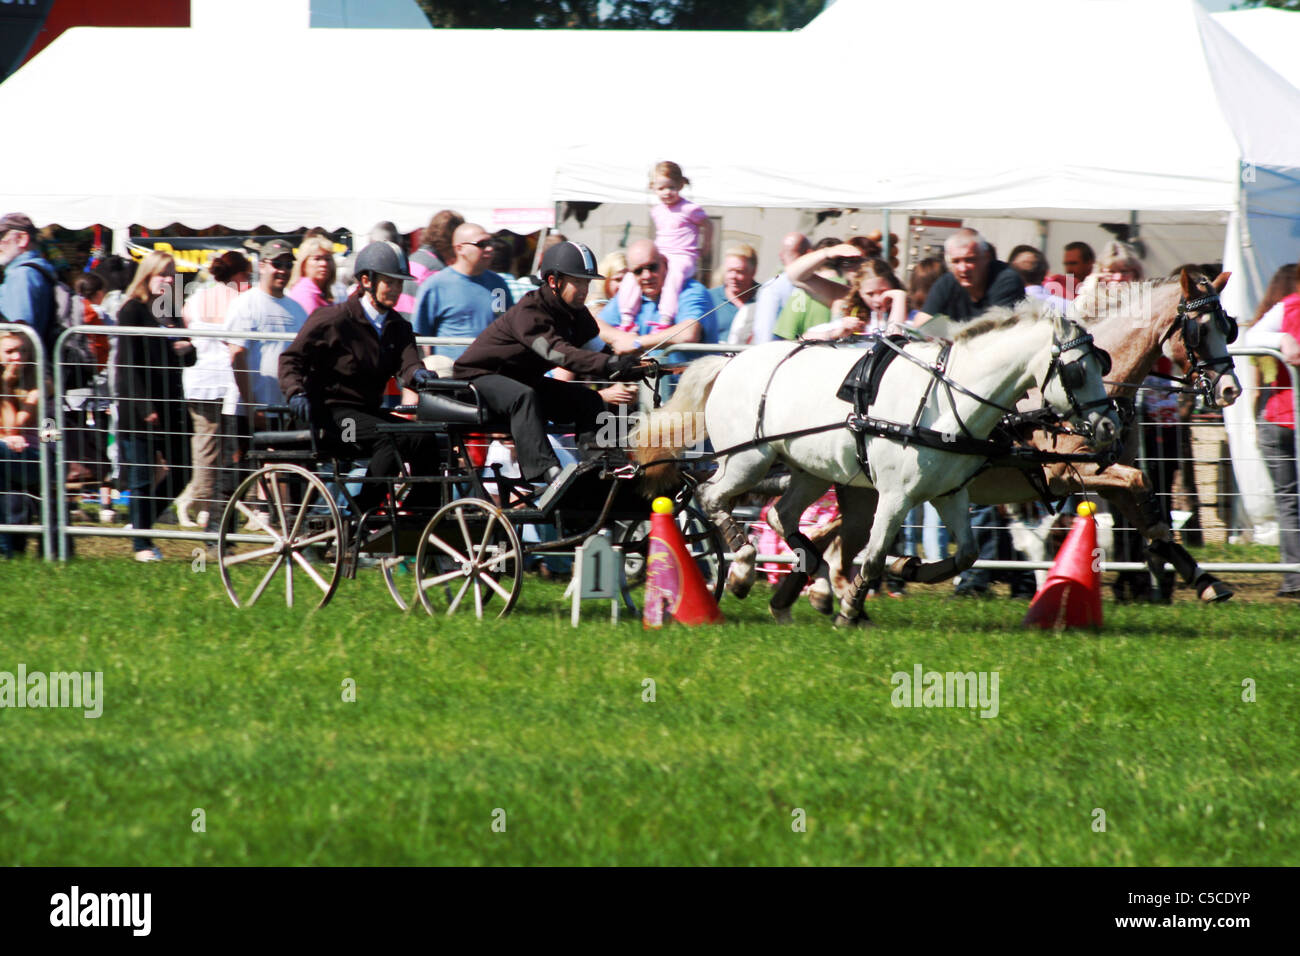 Scurry racing at Cheshire game and country show at Cheshire Show Ground Tabley Cheshire England - Stock Image